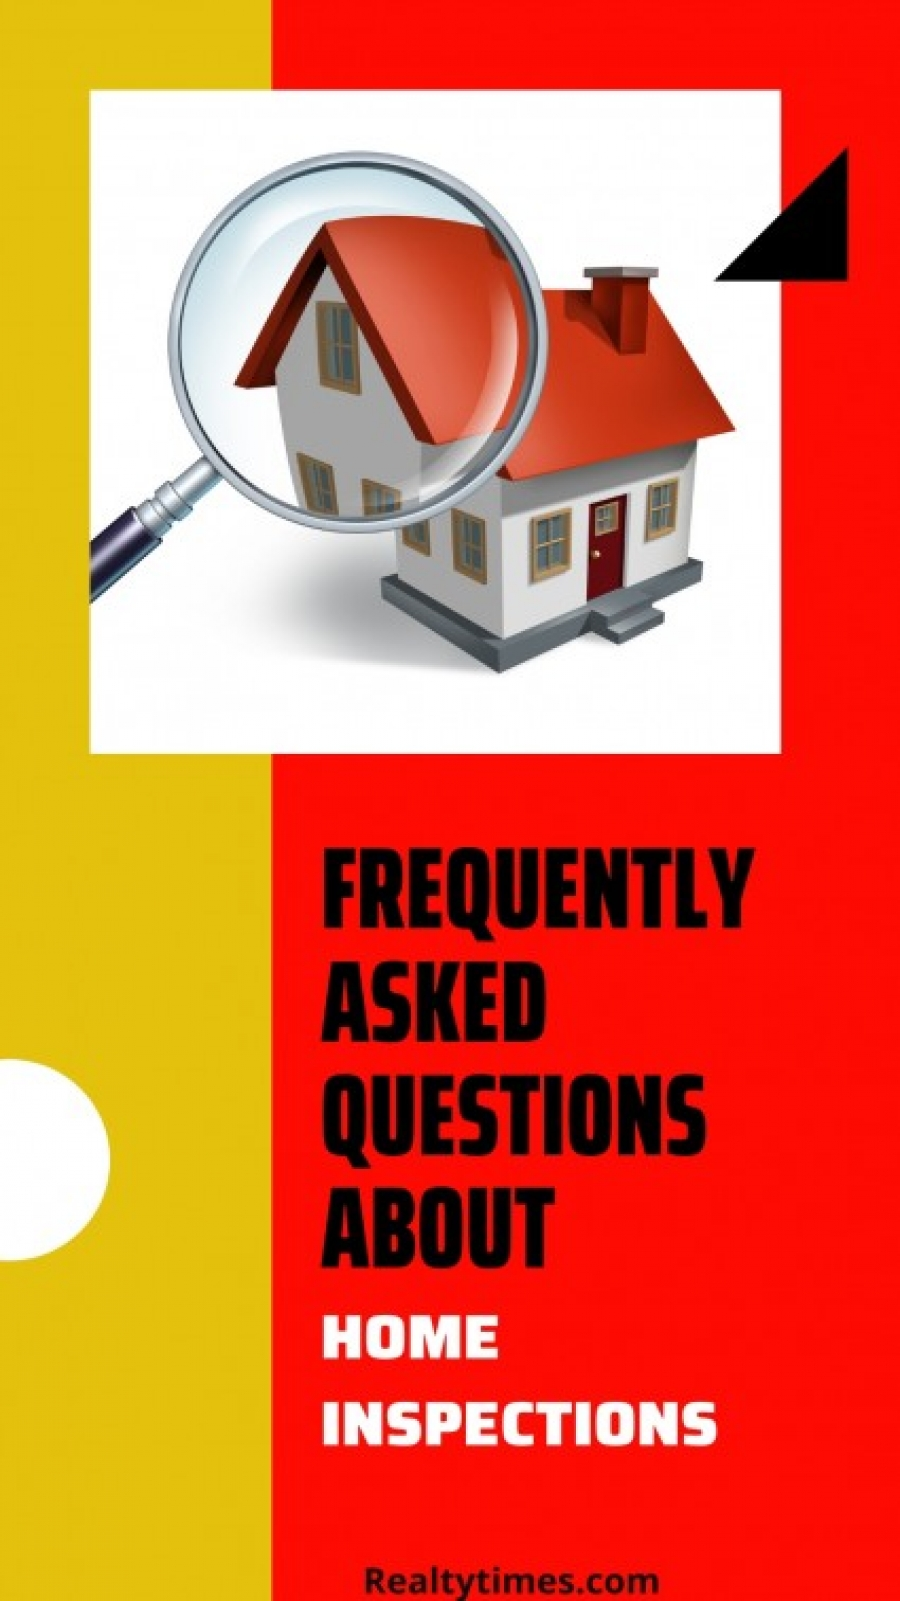 FAQ's About Home Inspections